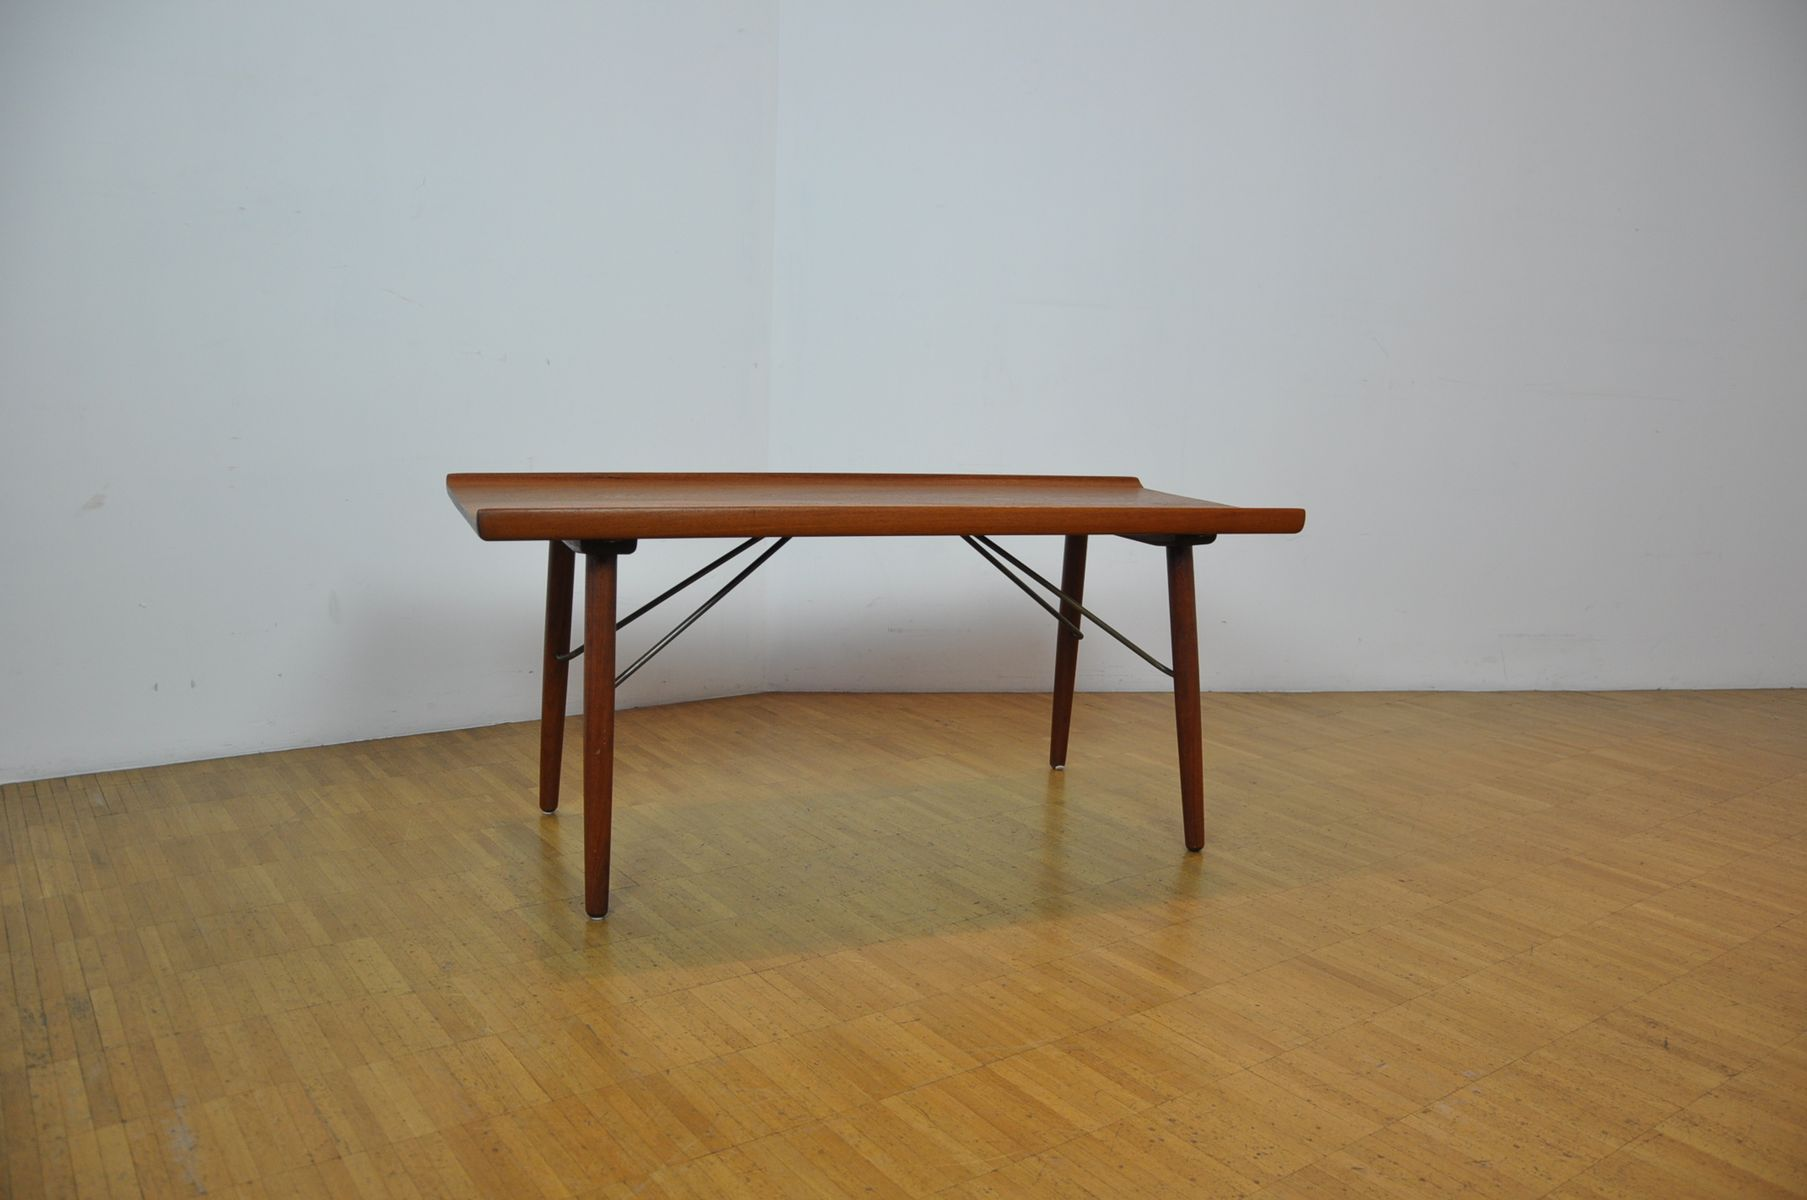 Side Table by Borge Mogensen for Soborg 1950s for sale at Pamono